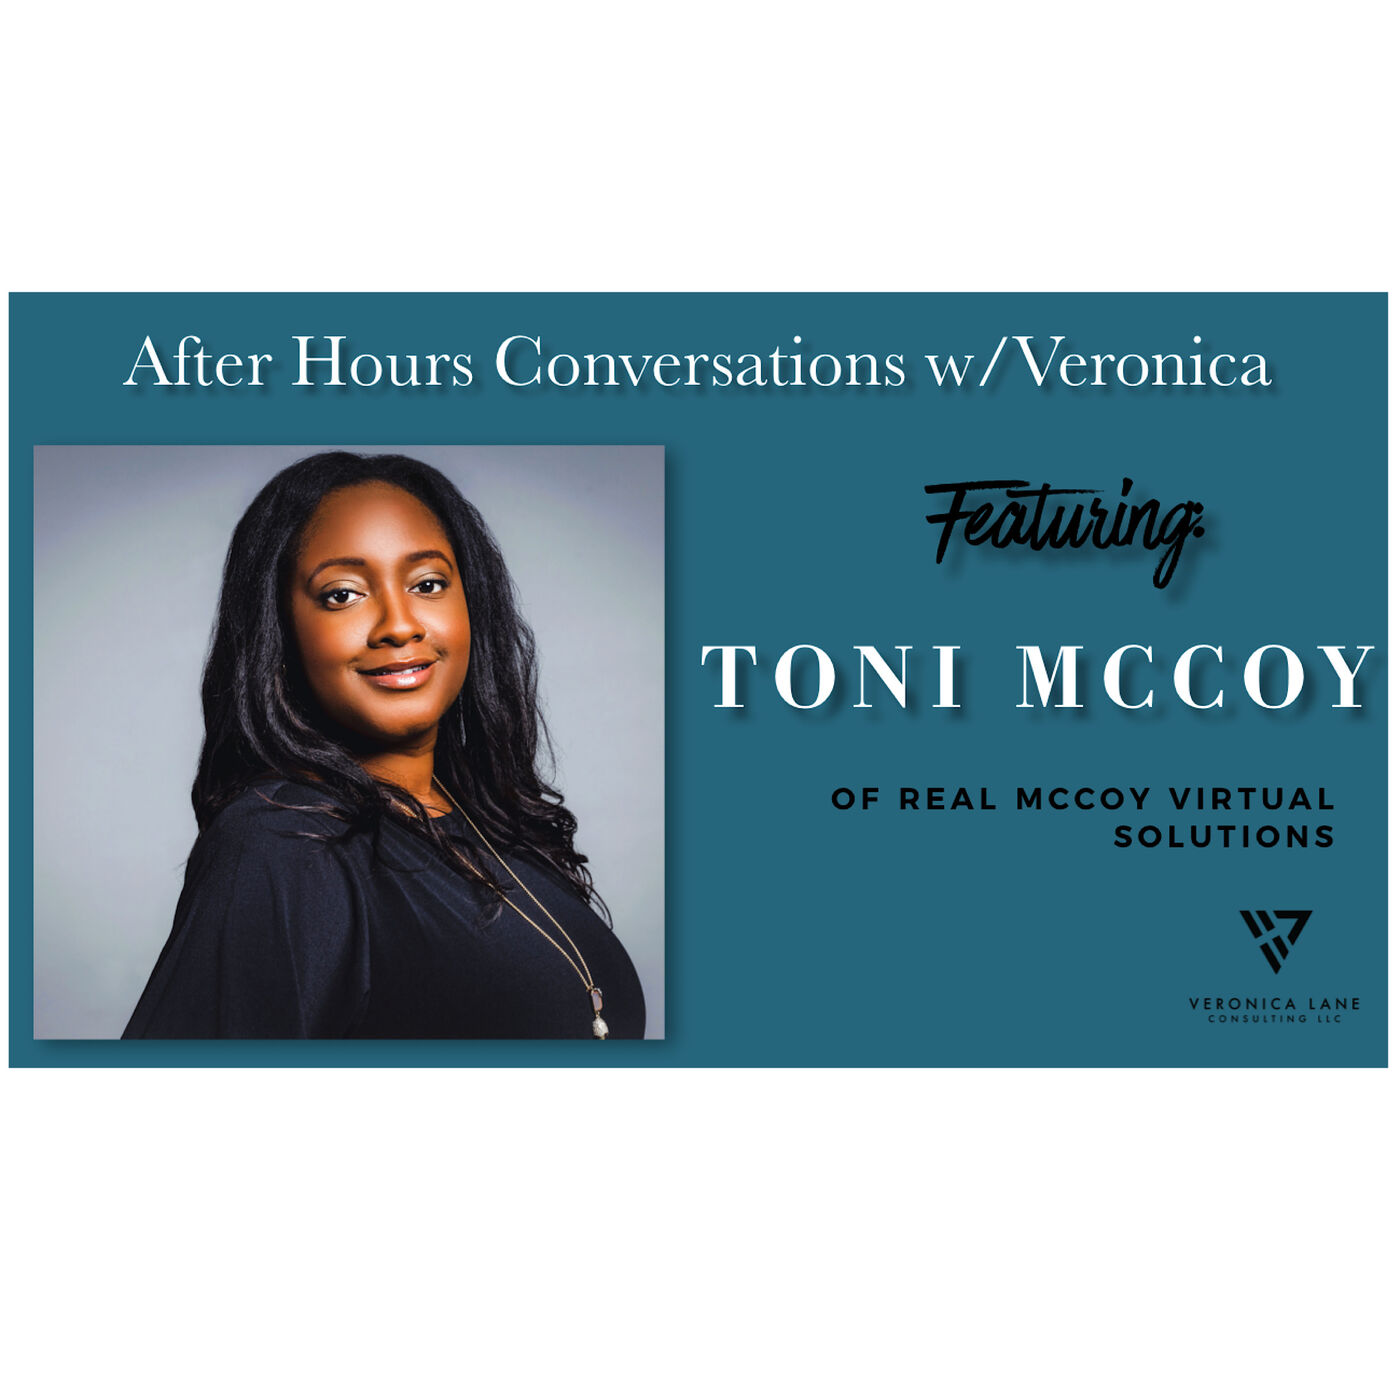 Virtual Assistants Protect Your Time - Featuring Toni McCoy